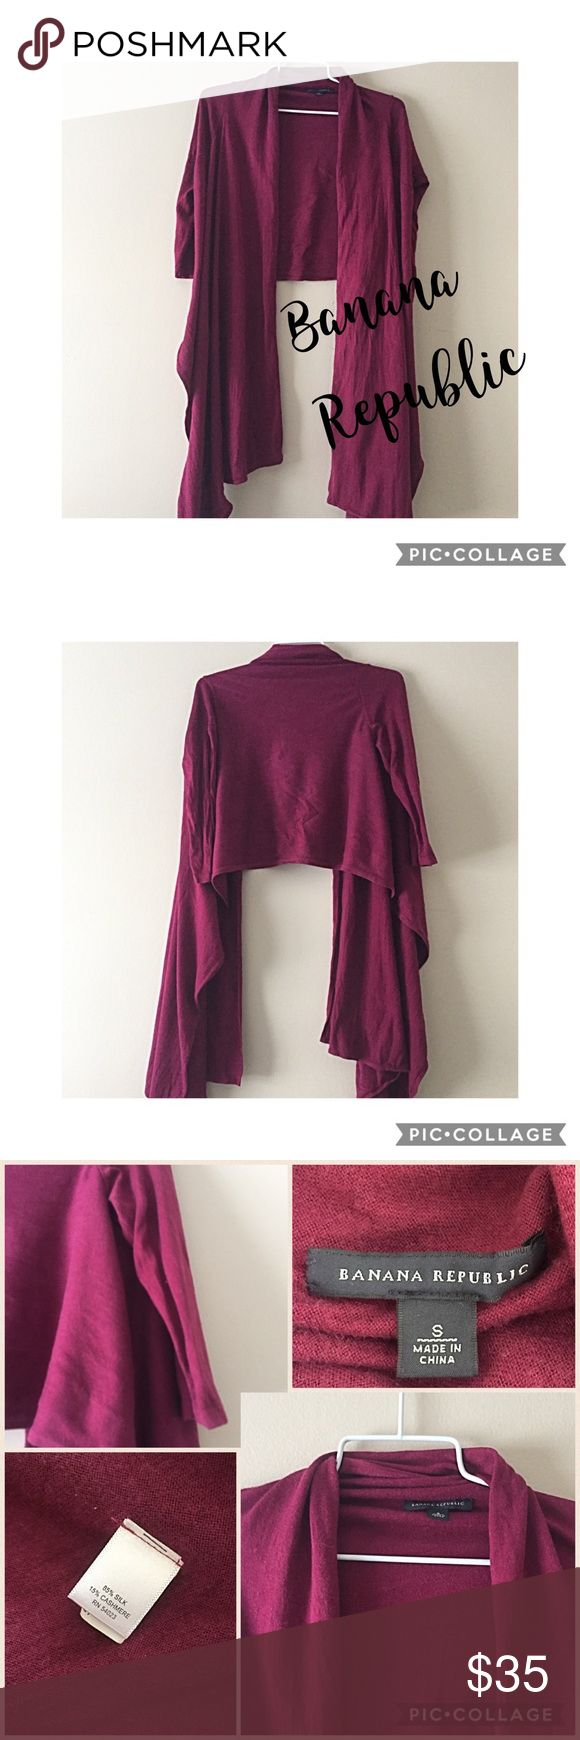 """Banana Republic cropped cardigan S Banana Republic cranberry 85% silk & 15% cashmere cropped cardigan with super long sides to wrap or tie. Great shape with tiny poking under arms, but not noticeable. Half sleeve. 16"""" bust, 18"""" long, and sides are 32"""" long. Make offers or bundle & save💖 Banana Republic Sweaters Cardigans"""